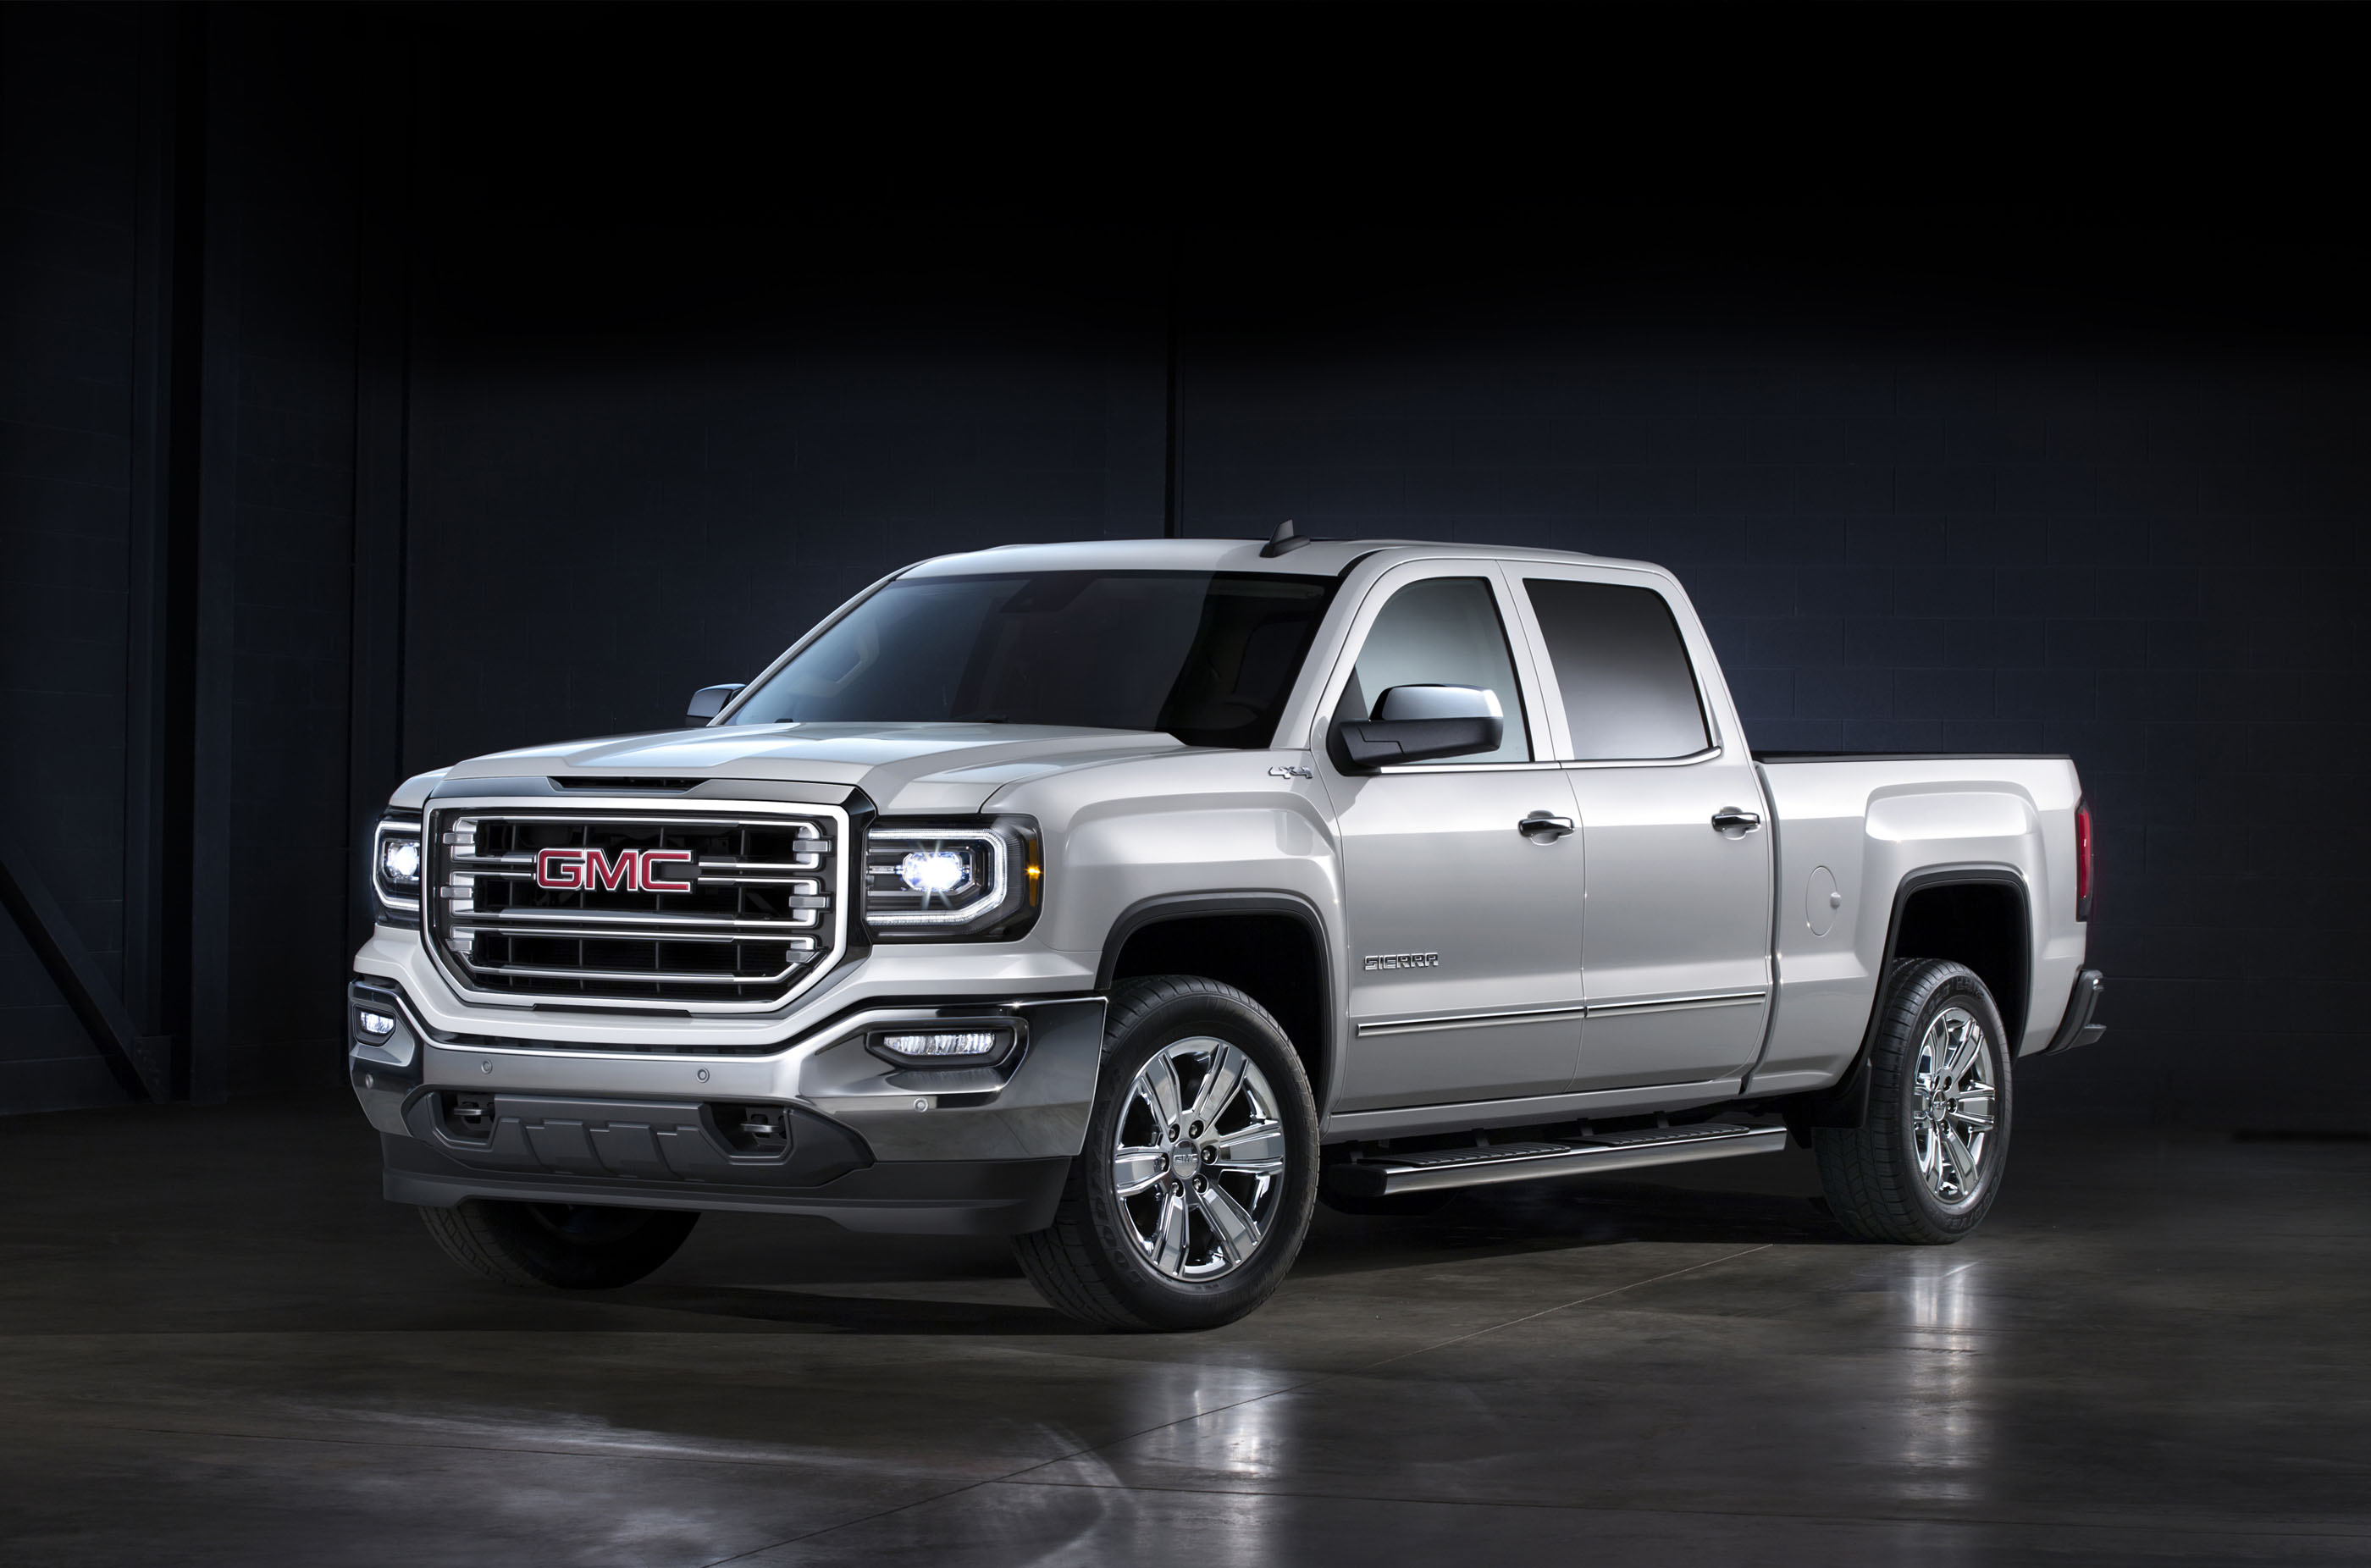 2017 gmc sierra vs 2017 ram 1500 compare trucks. Black Bedroom Furniture Sets. Home Design Ideas